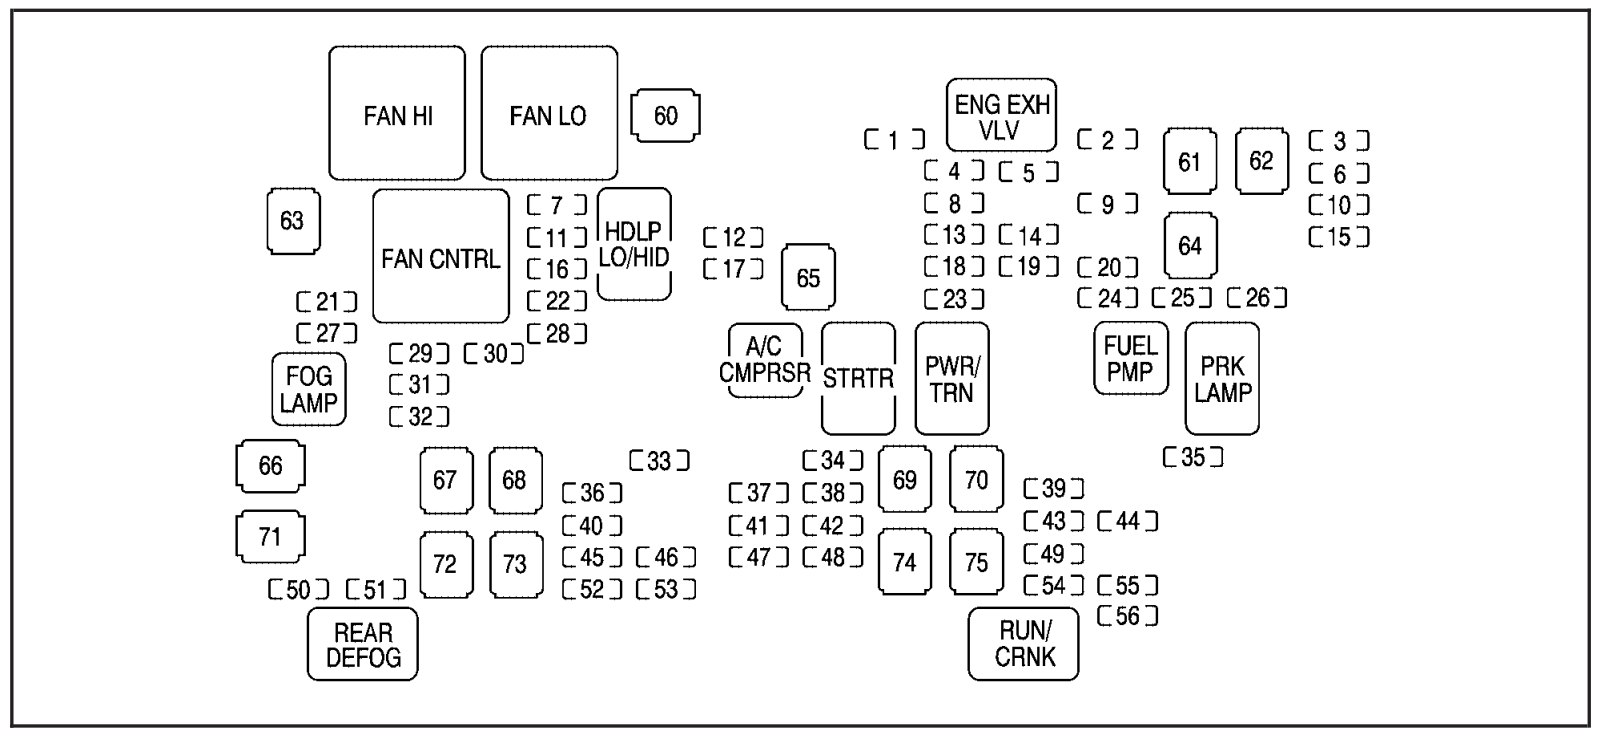 2007 tahoe fuse box diagram example electrical wiring diagram u2022 rh cranejapan co 2003 Chevy Tahoe Fuse Box Diagram 2007 Tahoe Fuse Box Diagram